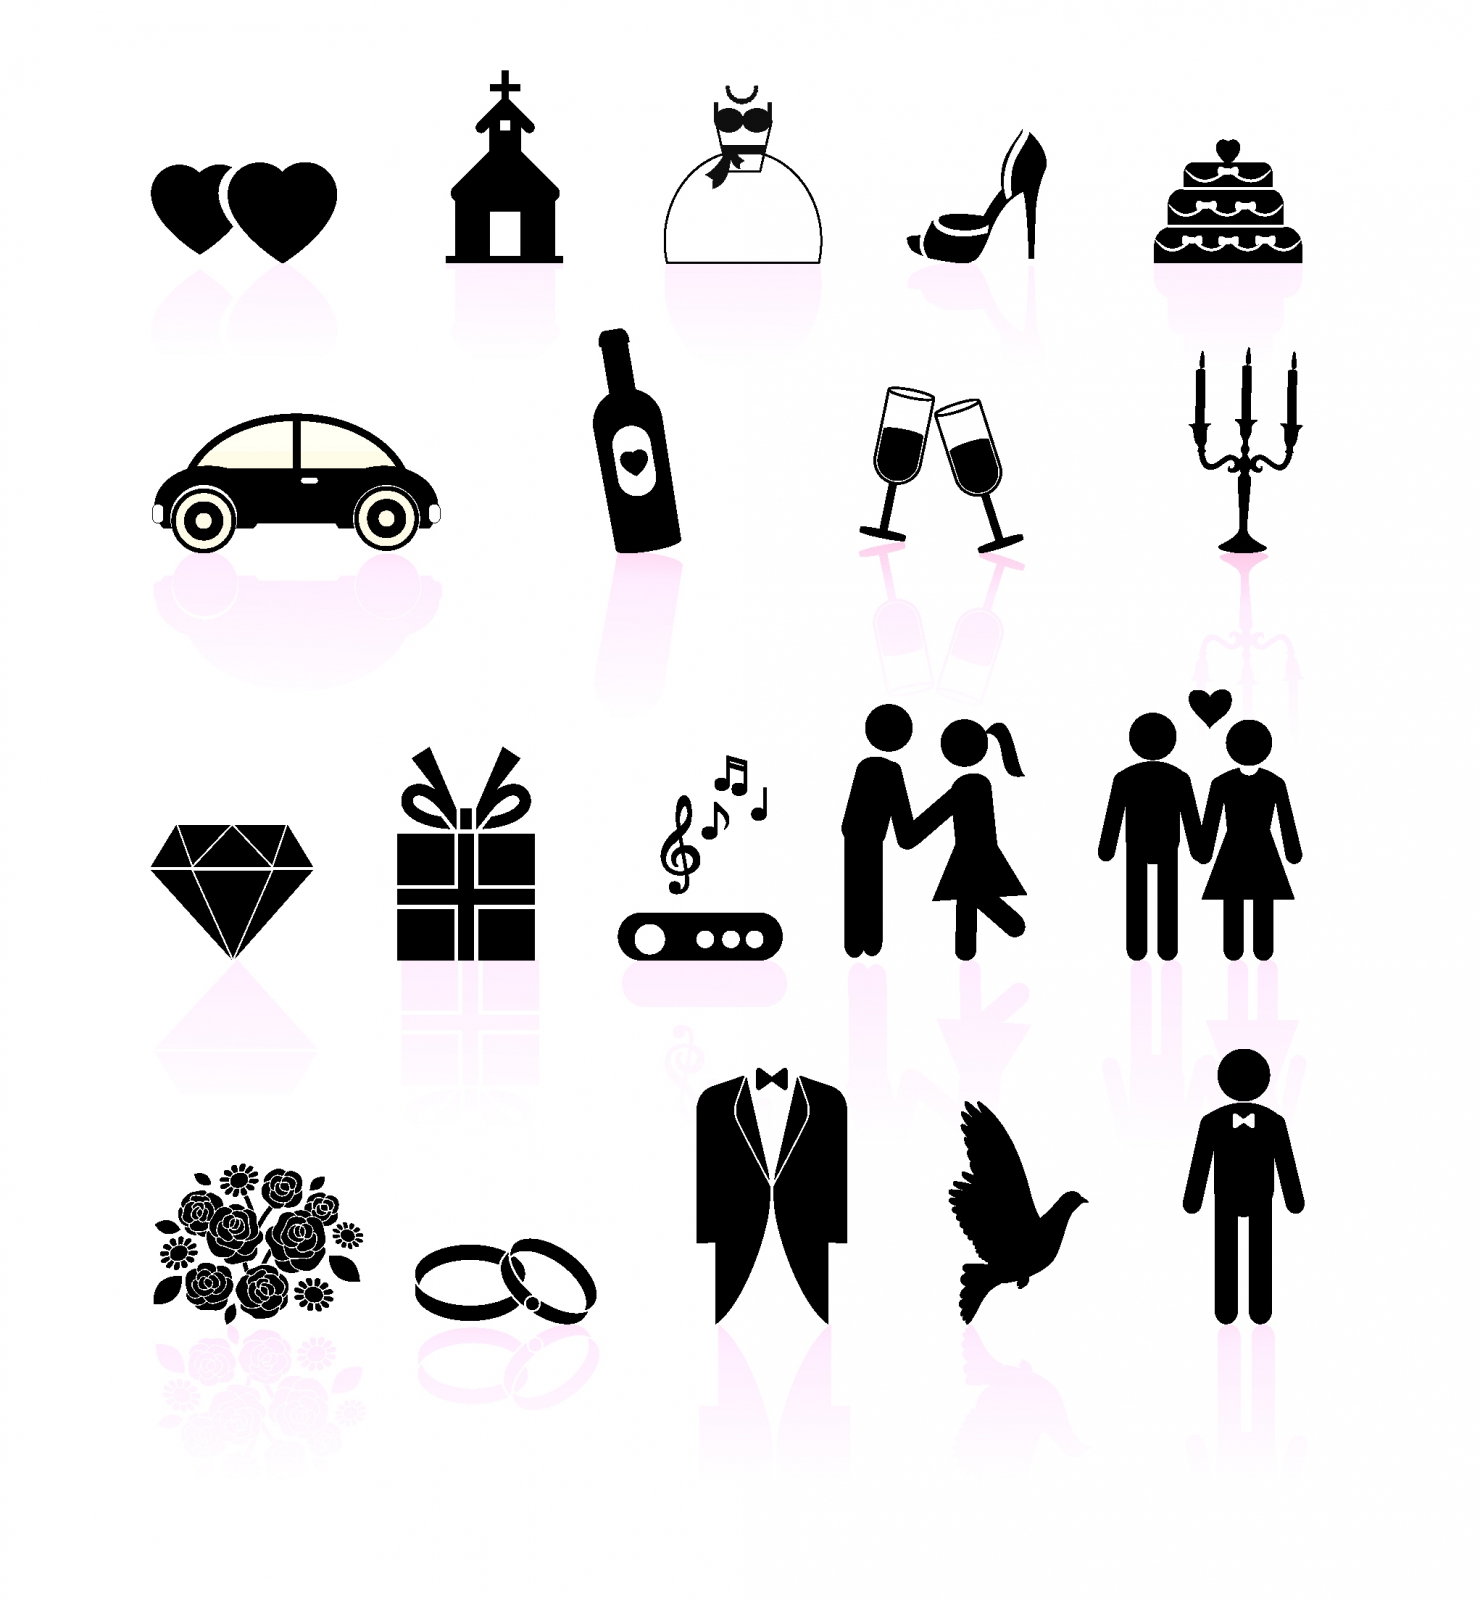 10 Black And White Icon Sets Images